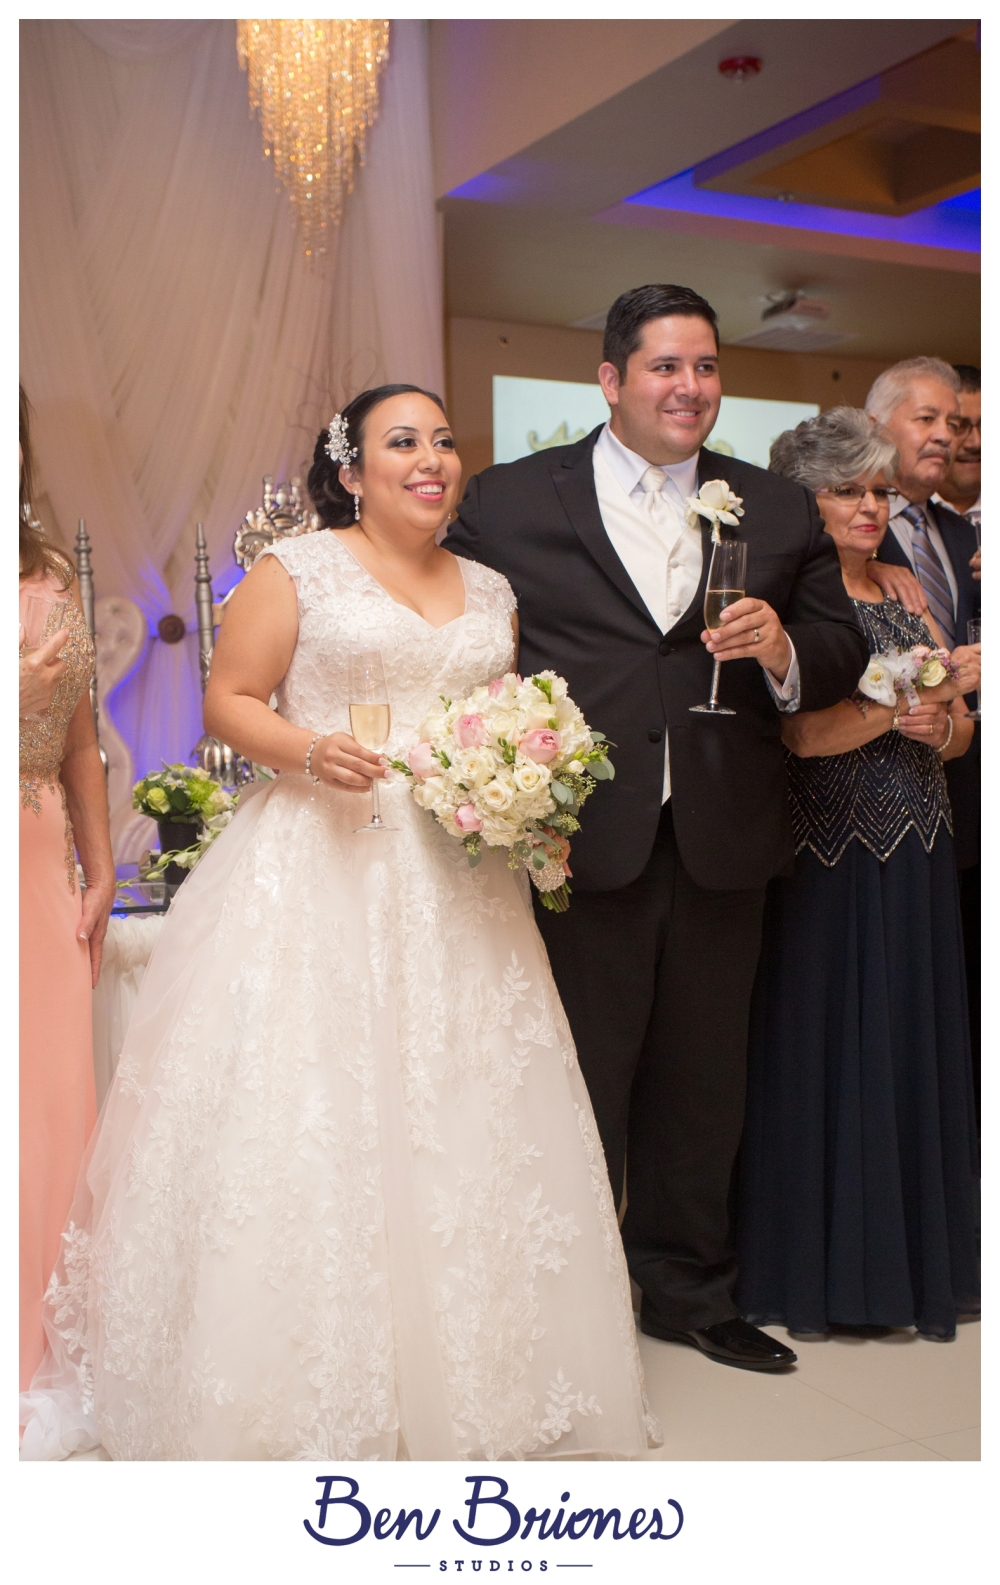 9-10-16_blog_michelle-humberto-wedding_bbs-4185_fb